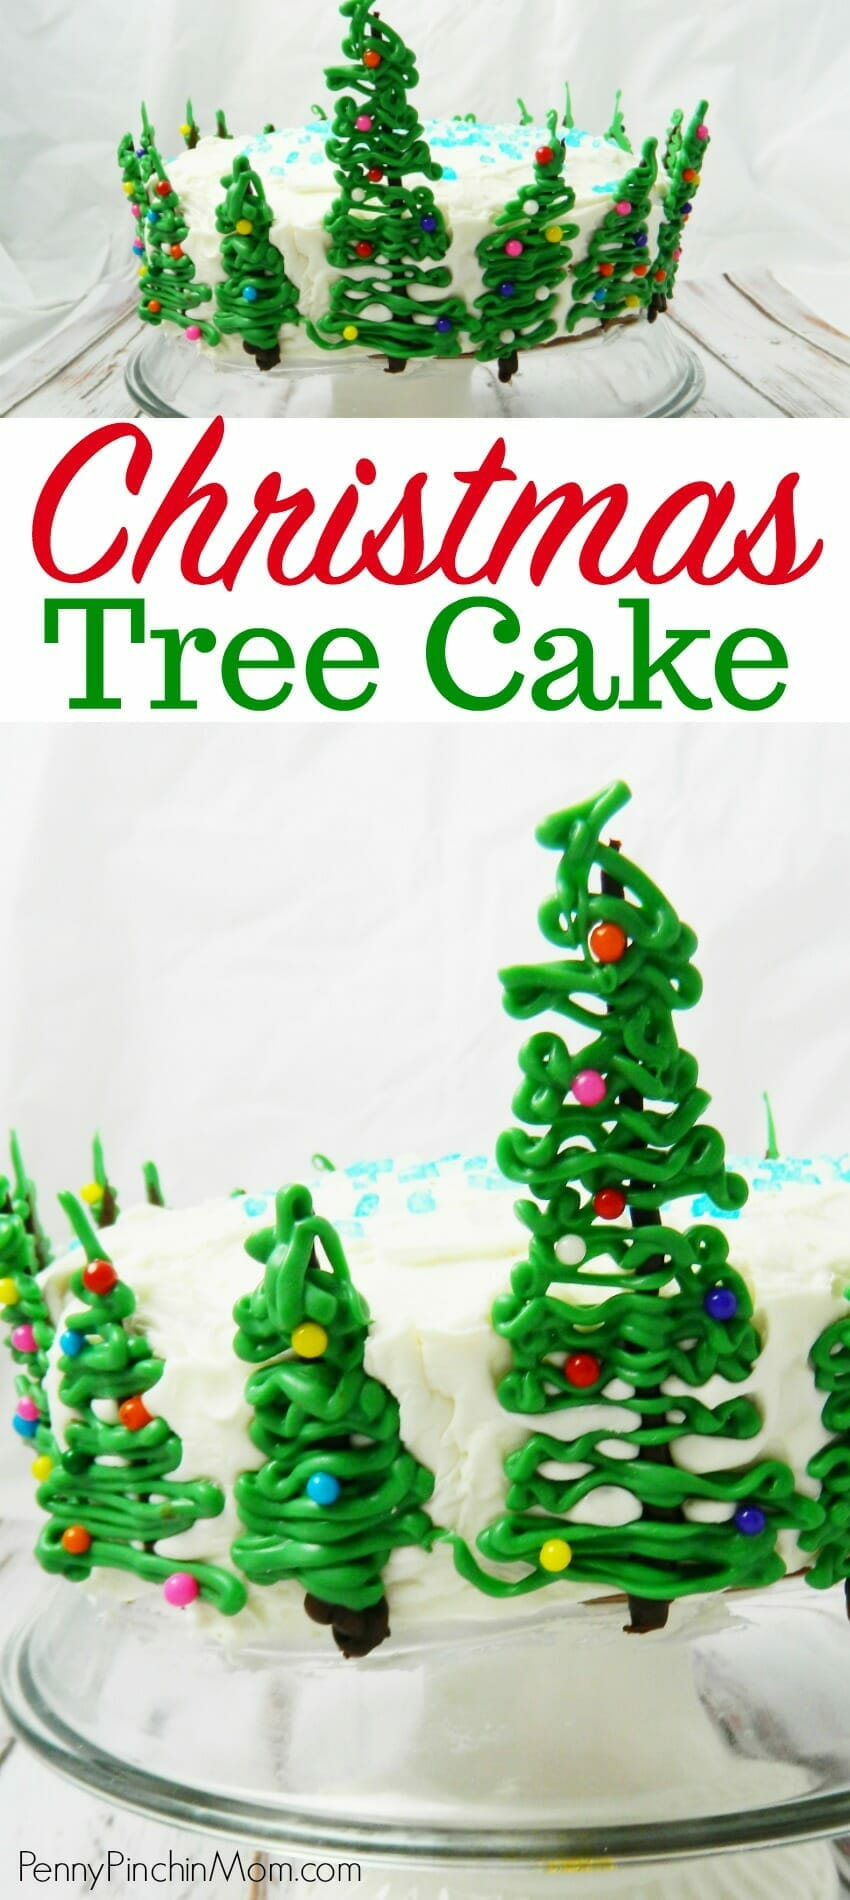 easy christmas tree cake christmas recipe idea christmas treats christmas baking holiday baking - Easy Christmas Tree